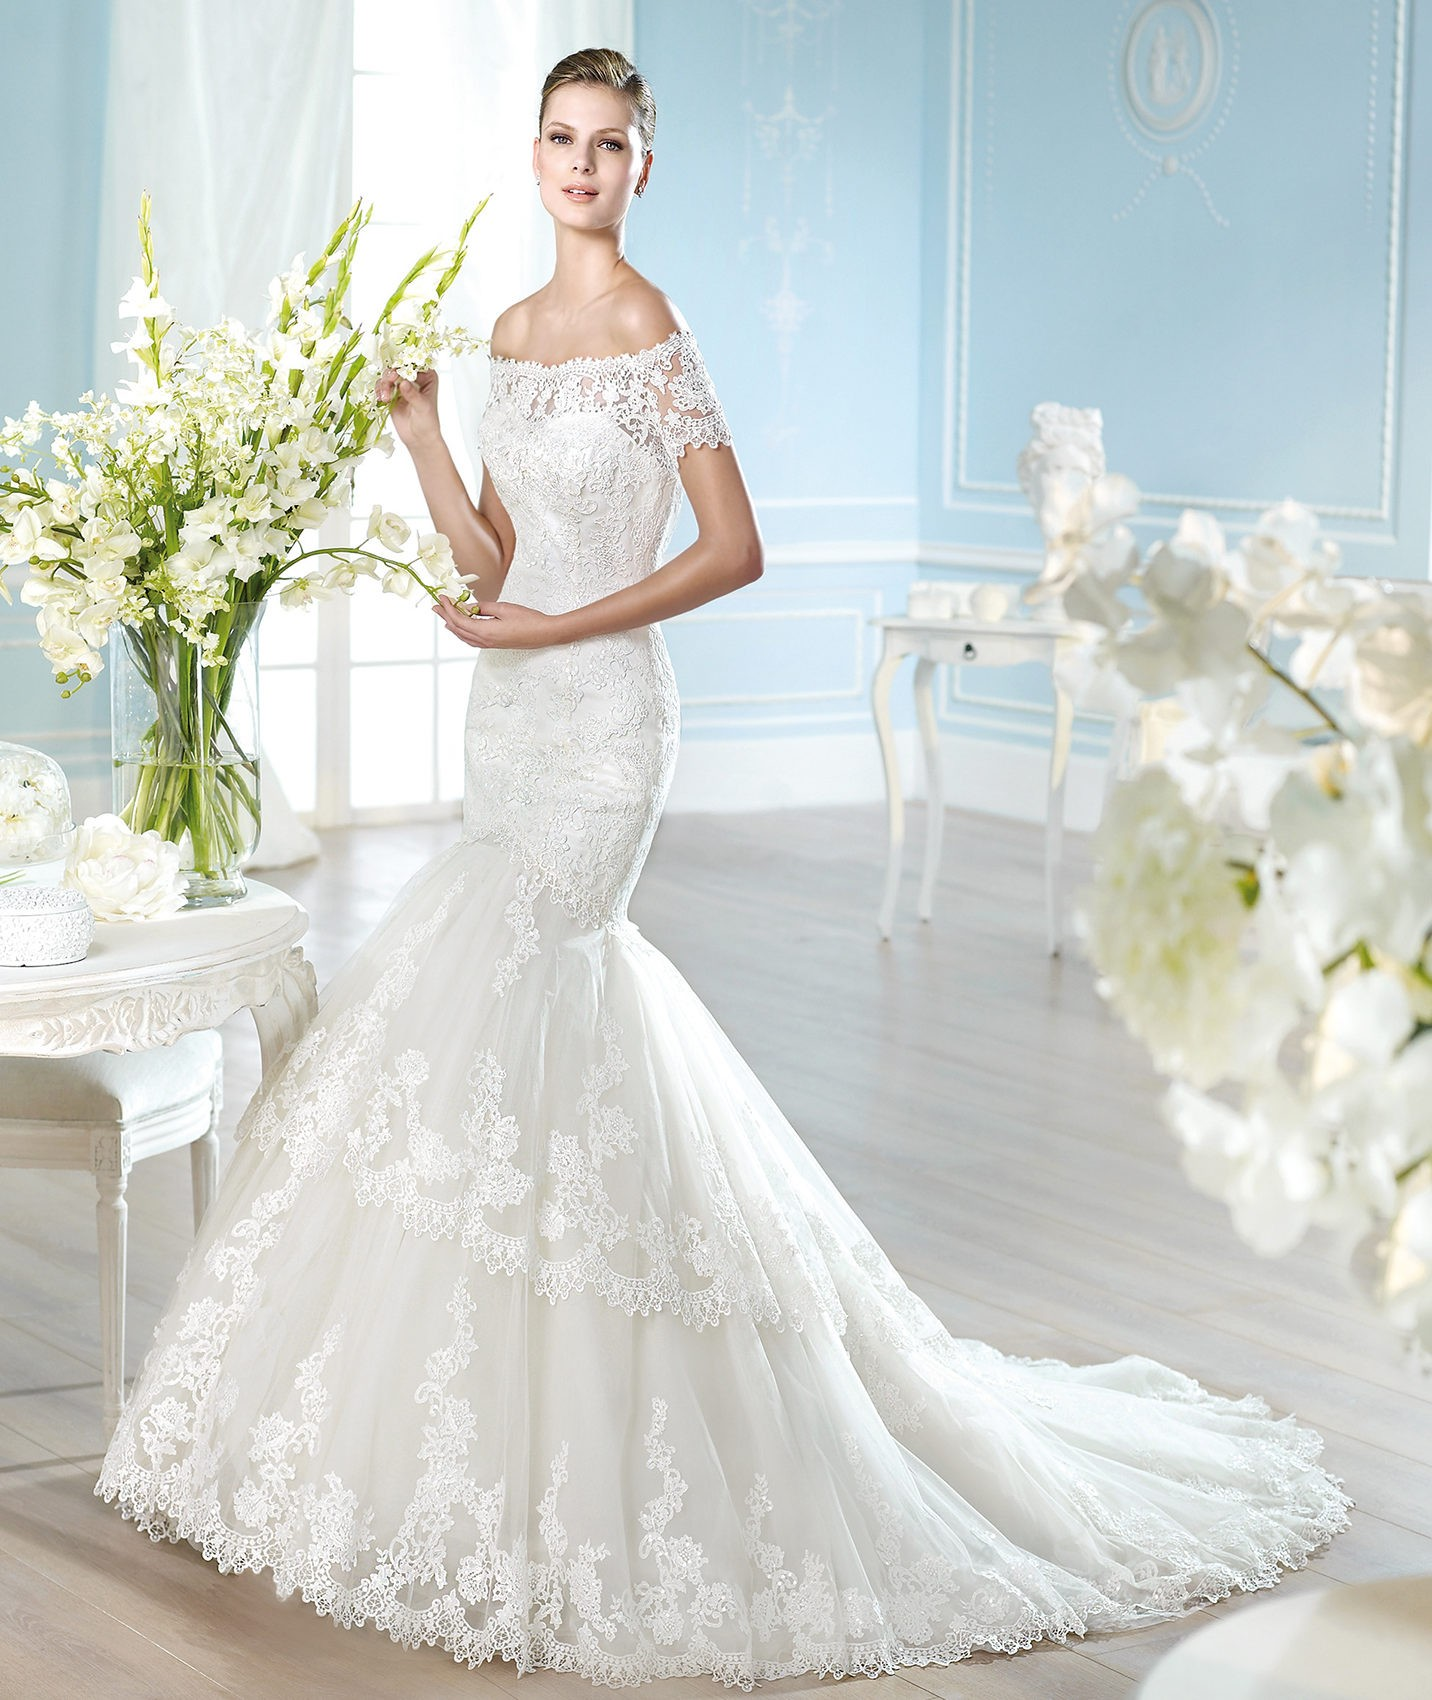 Sexy And Dazzling Lace Mermaid Wedding Dresses